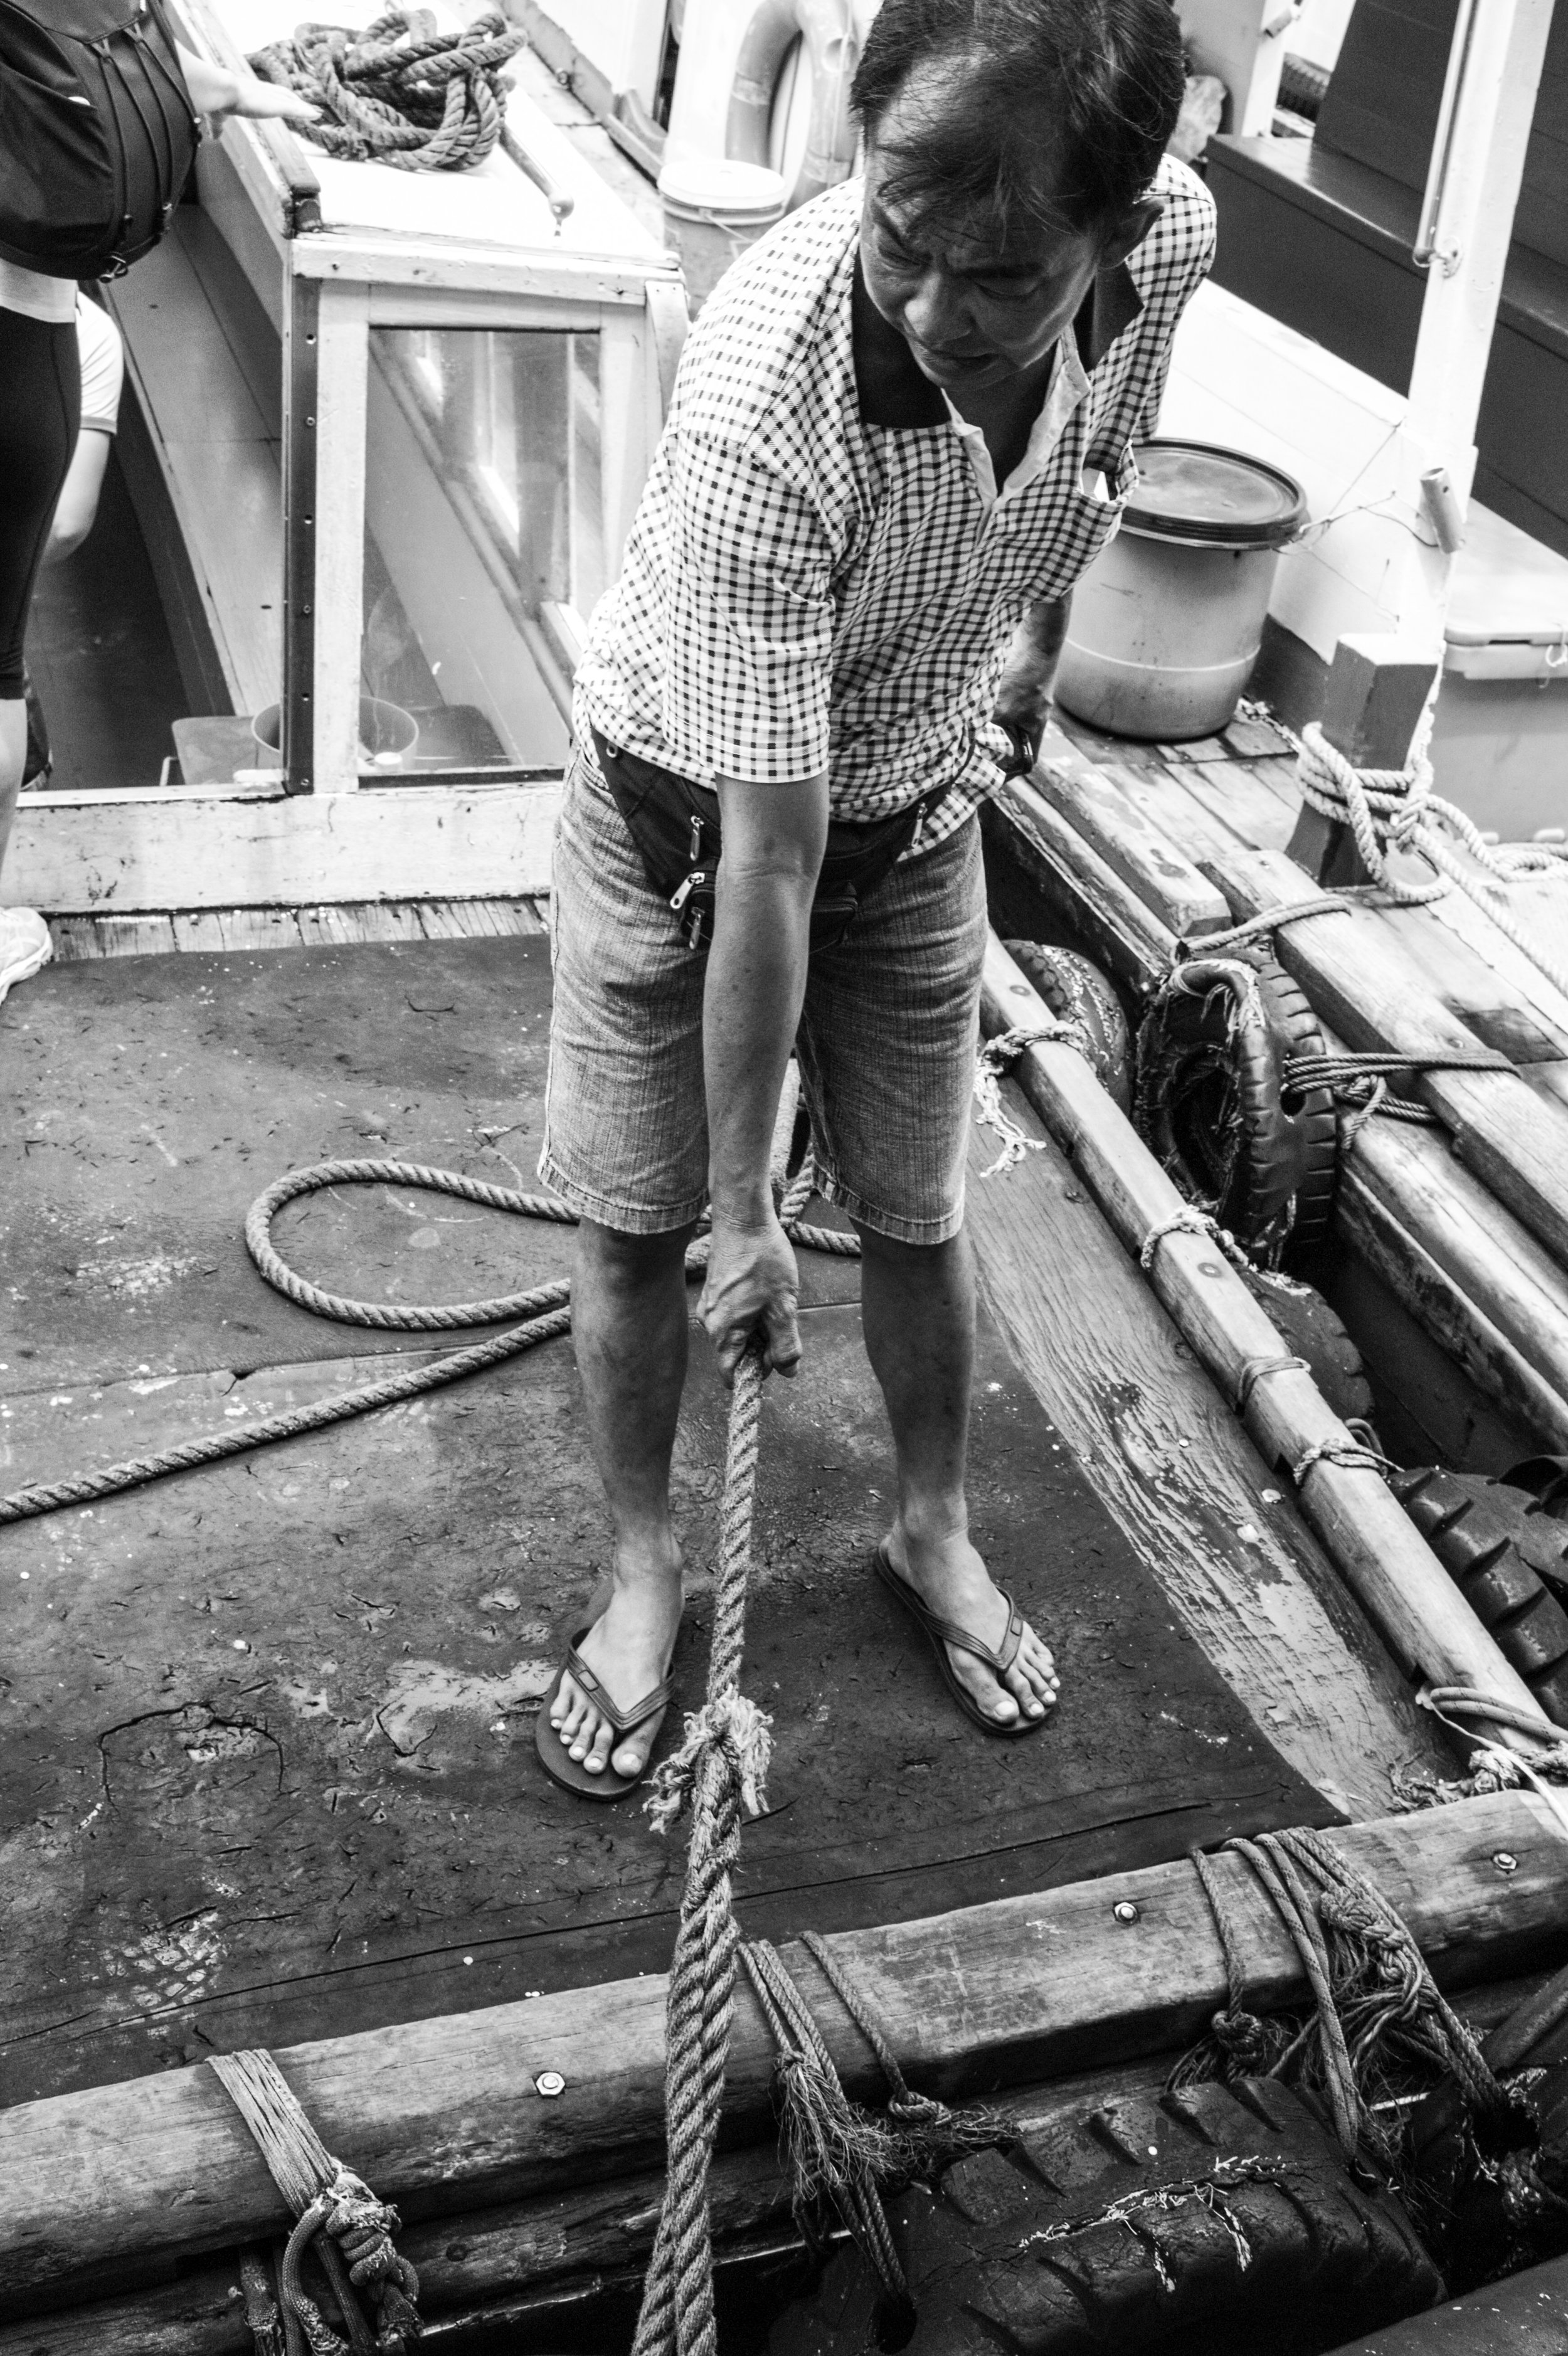 Watch your step . A boatman maintains a bumboat in steady position for passengers to board safely onto the vessel.